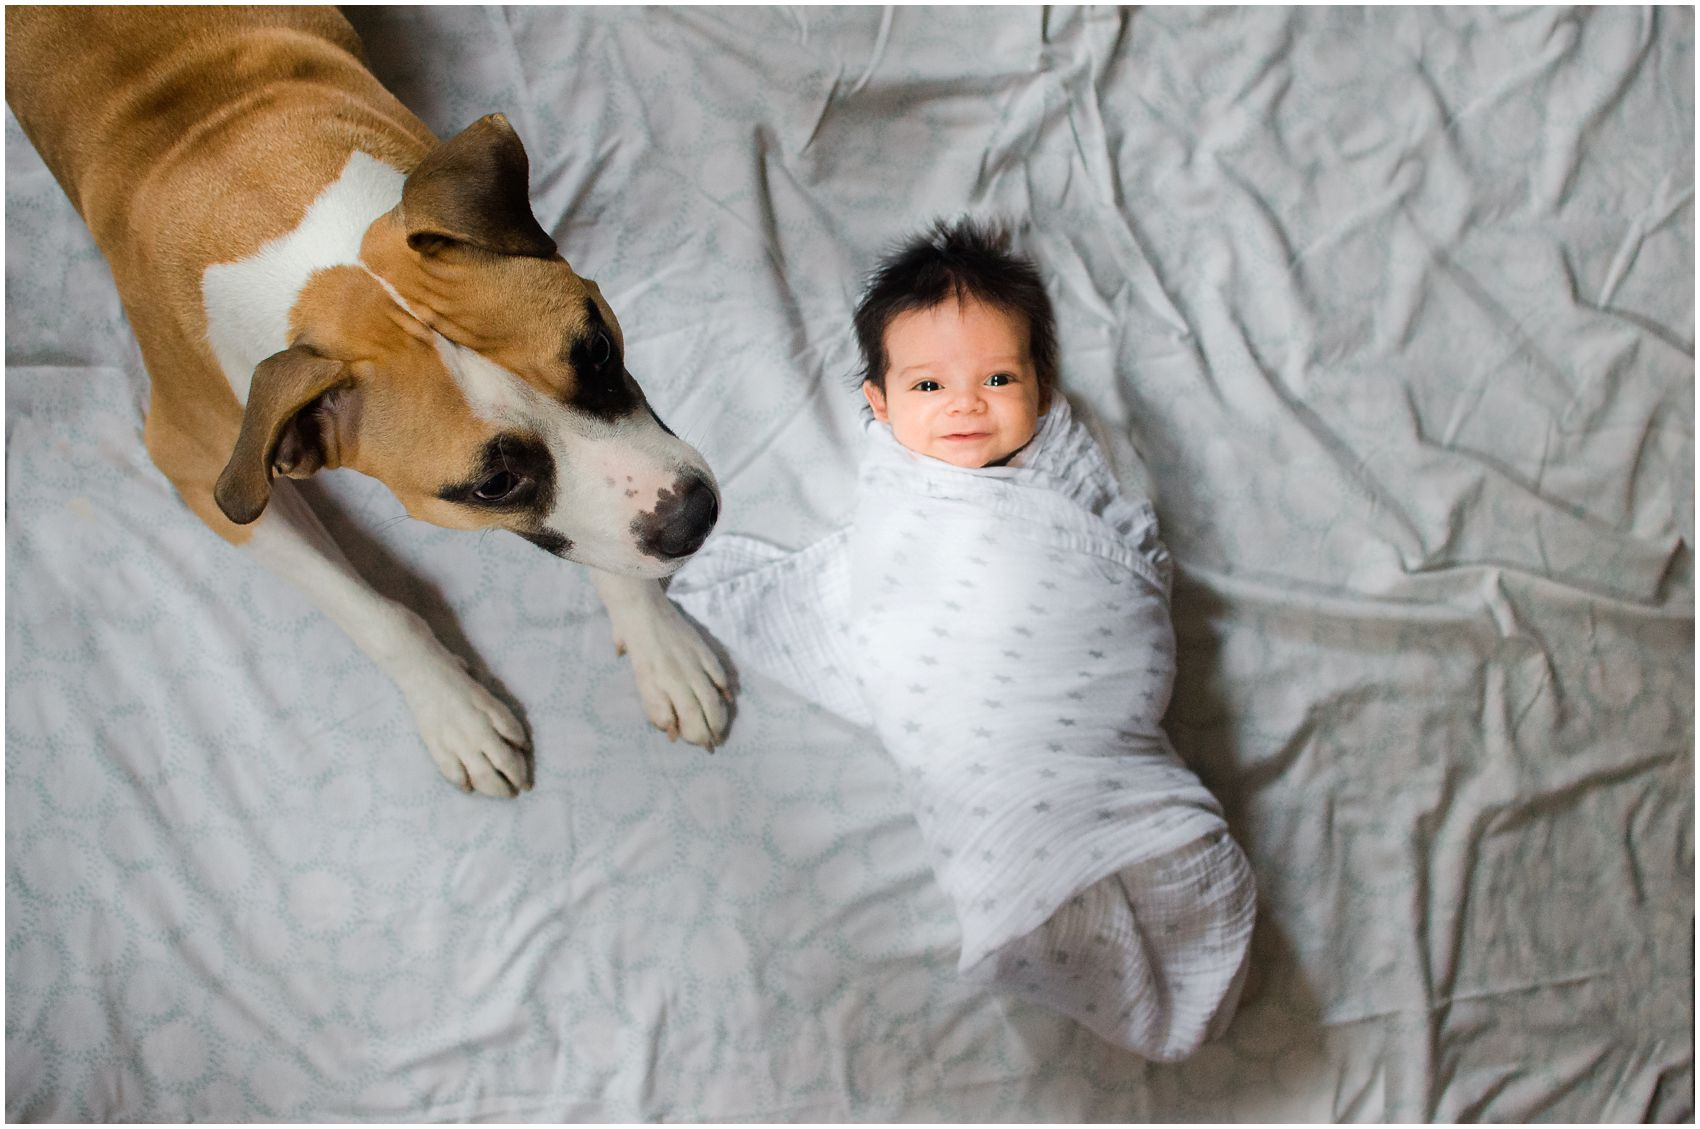 family dog with smiling and awake newborn baby laying on bed